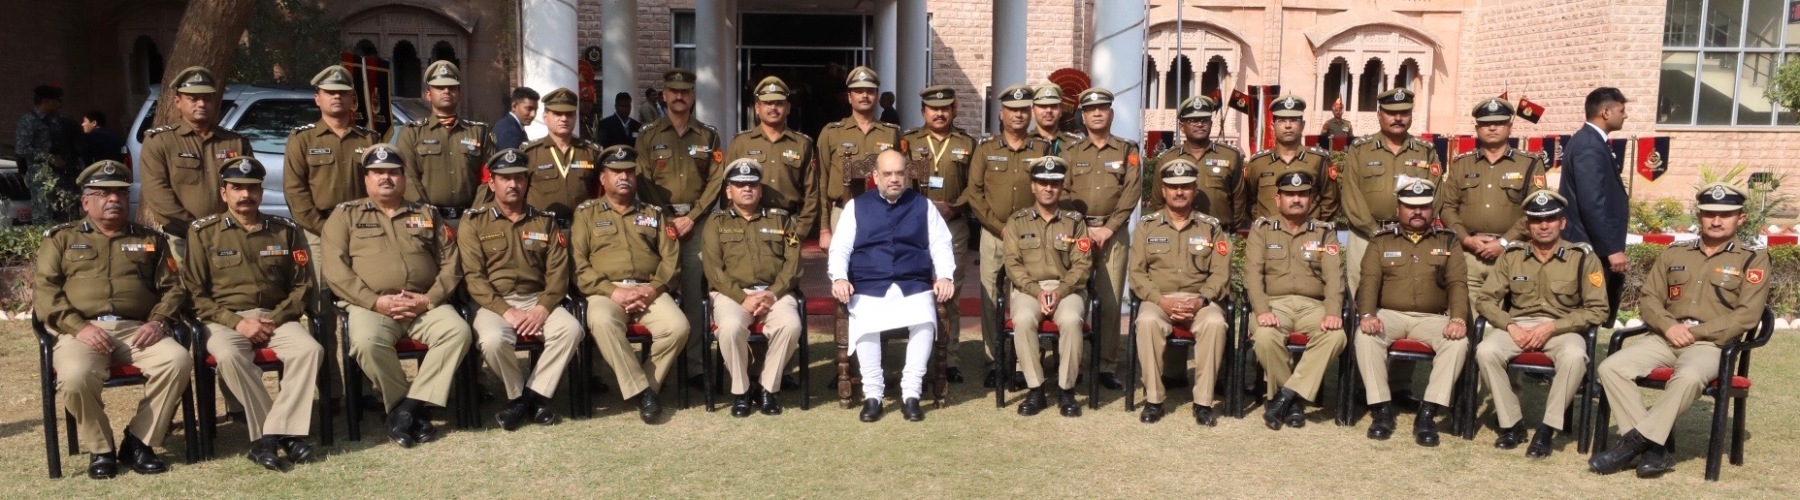 Union Minister of Home Affairs Shri Amit Shah meets officers of Border Security Force (BSF) posted on the Rajasthan frontier in Jodhpur on January 3, 2020